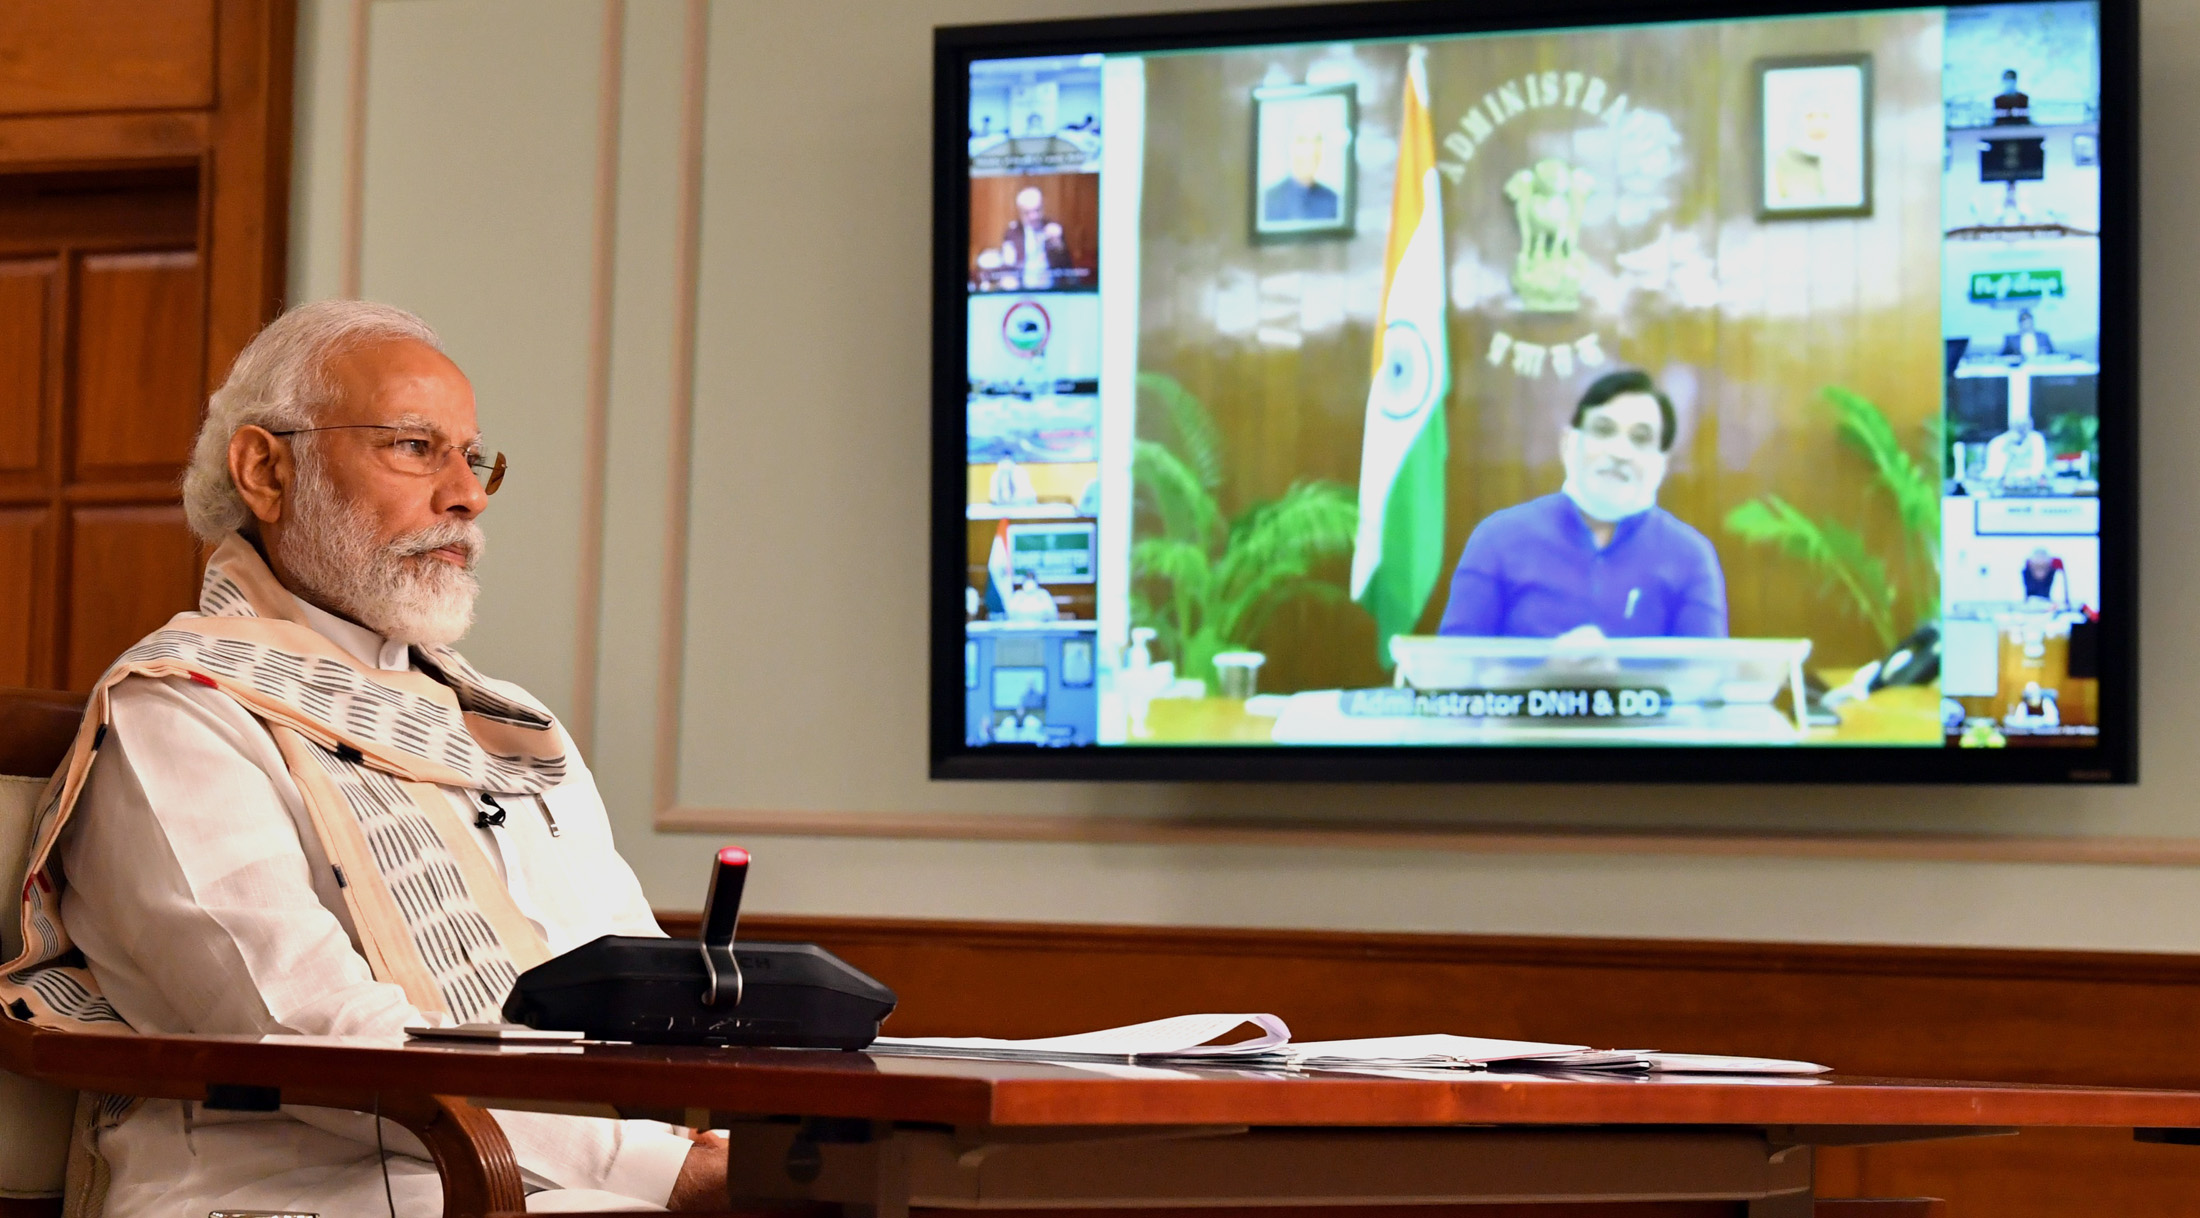 The Prime Minister, Shri Narendra Modi interacting with the Chief Ministers via video conferencing to discuss the situation emerging post Unlock 1.0 and plan ahead for tackling the COVID-19 pandemic, in New Delhi on June 16, 2020.